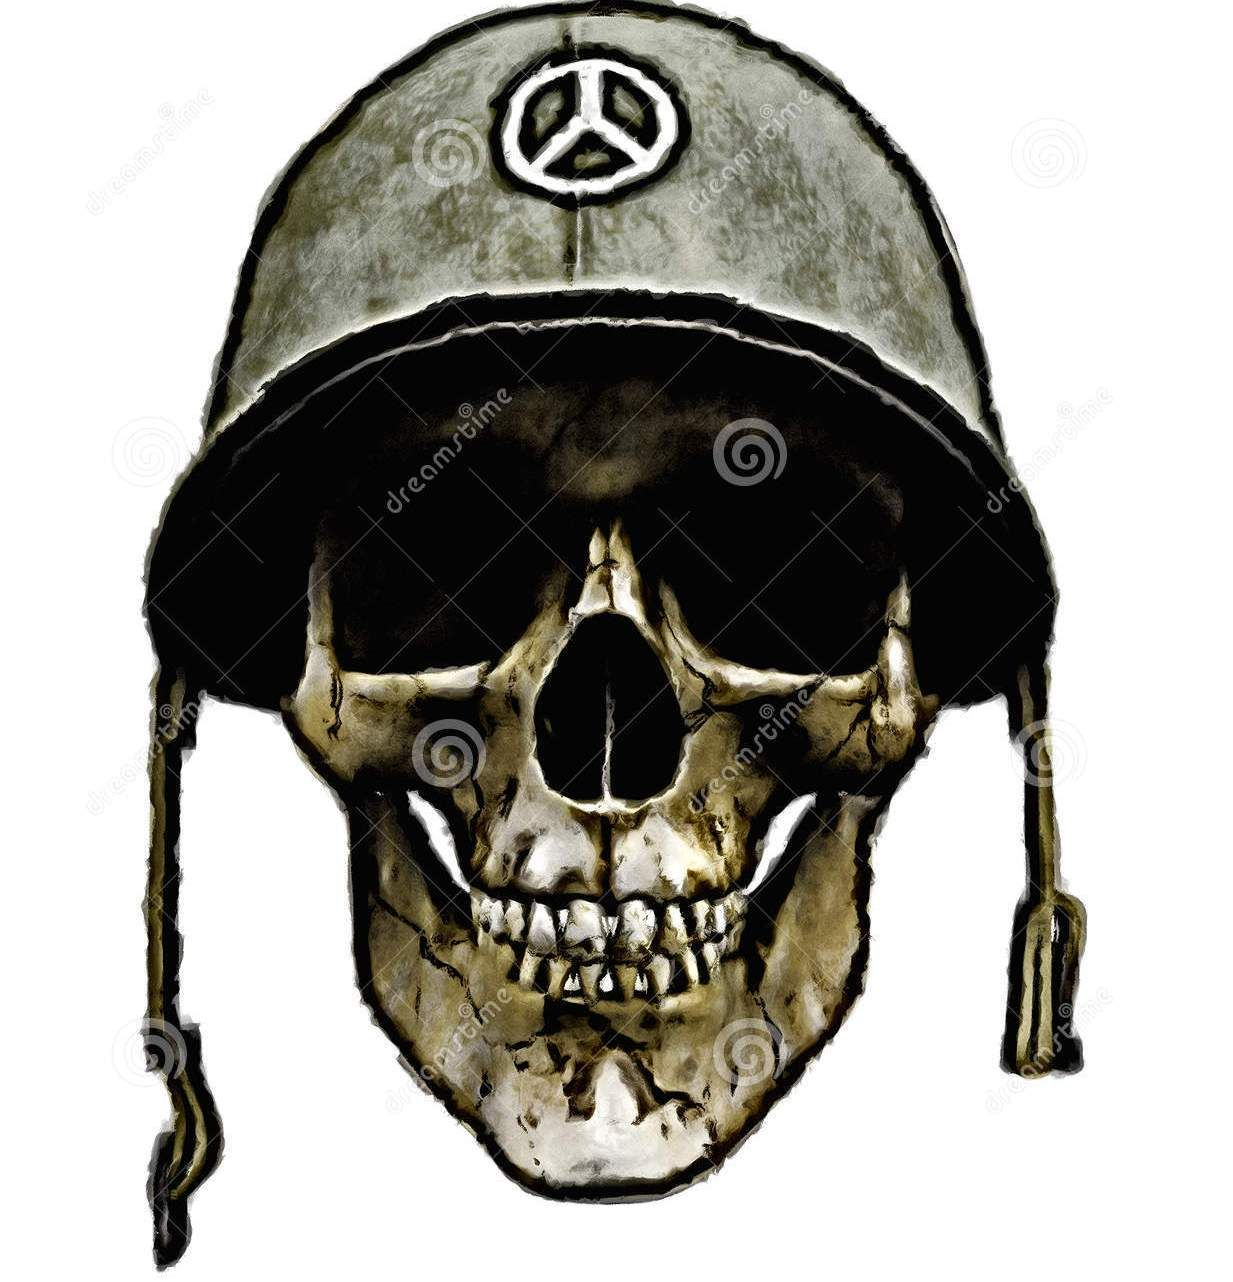 American Army Helmet Dead Soldier Tattoo Design | Bike ...